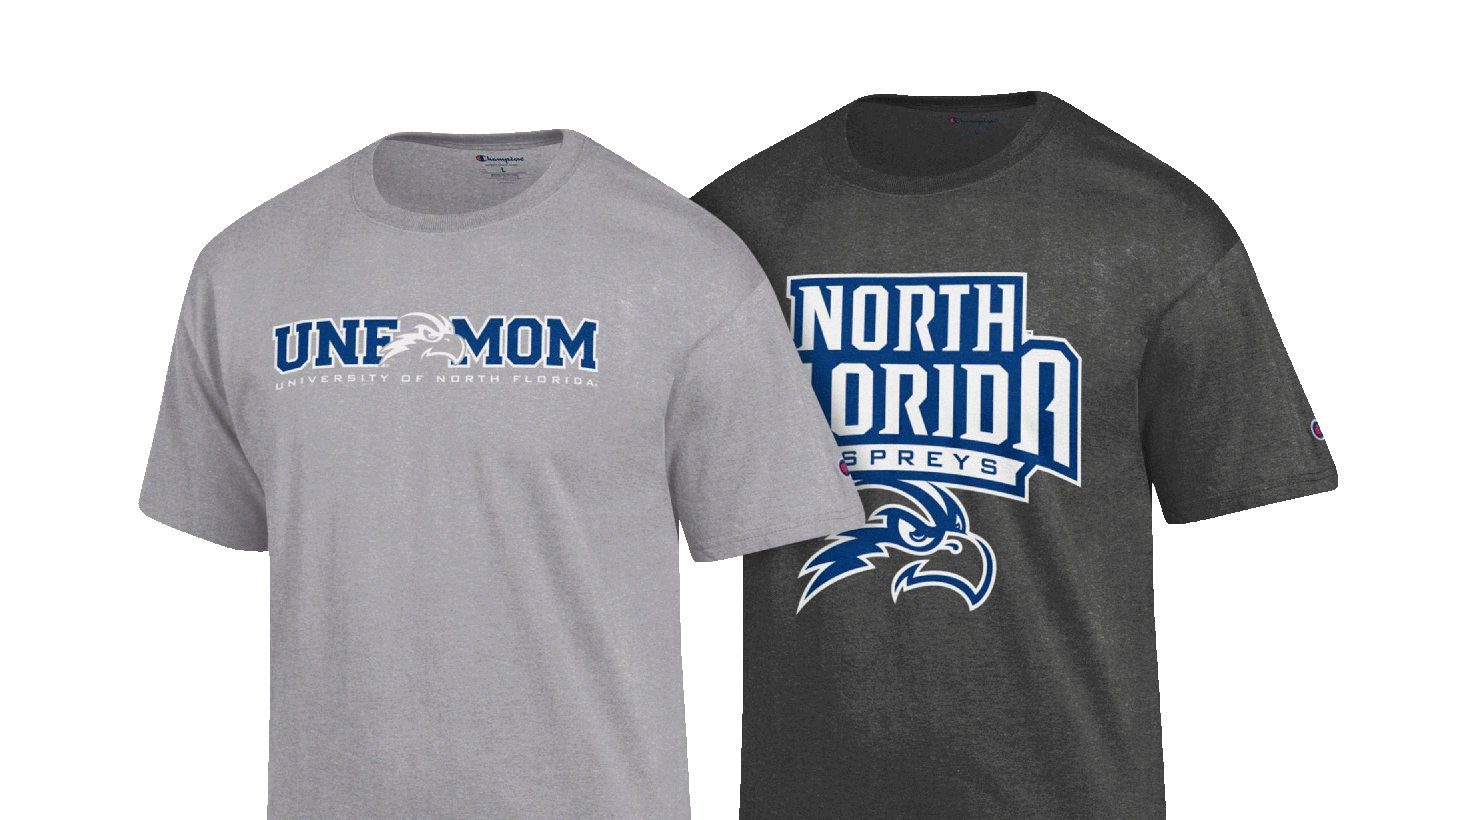 59a7ee1b4 University of North Florida Bookstore Apparel, Merchandise, & Gifts